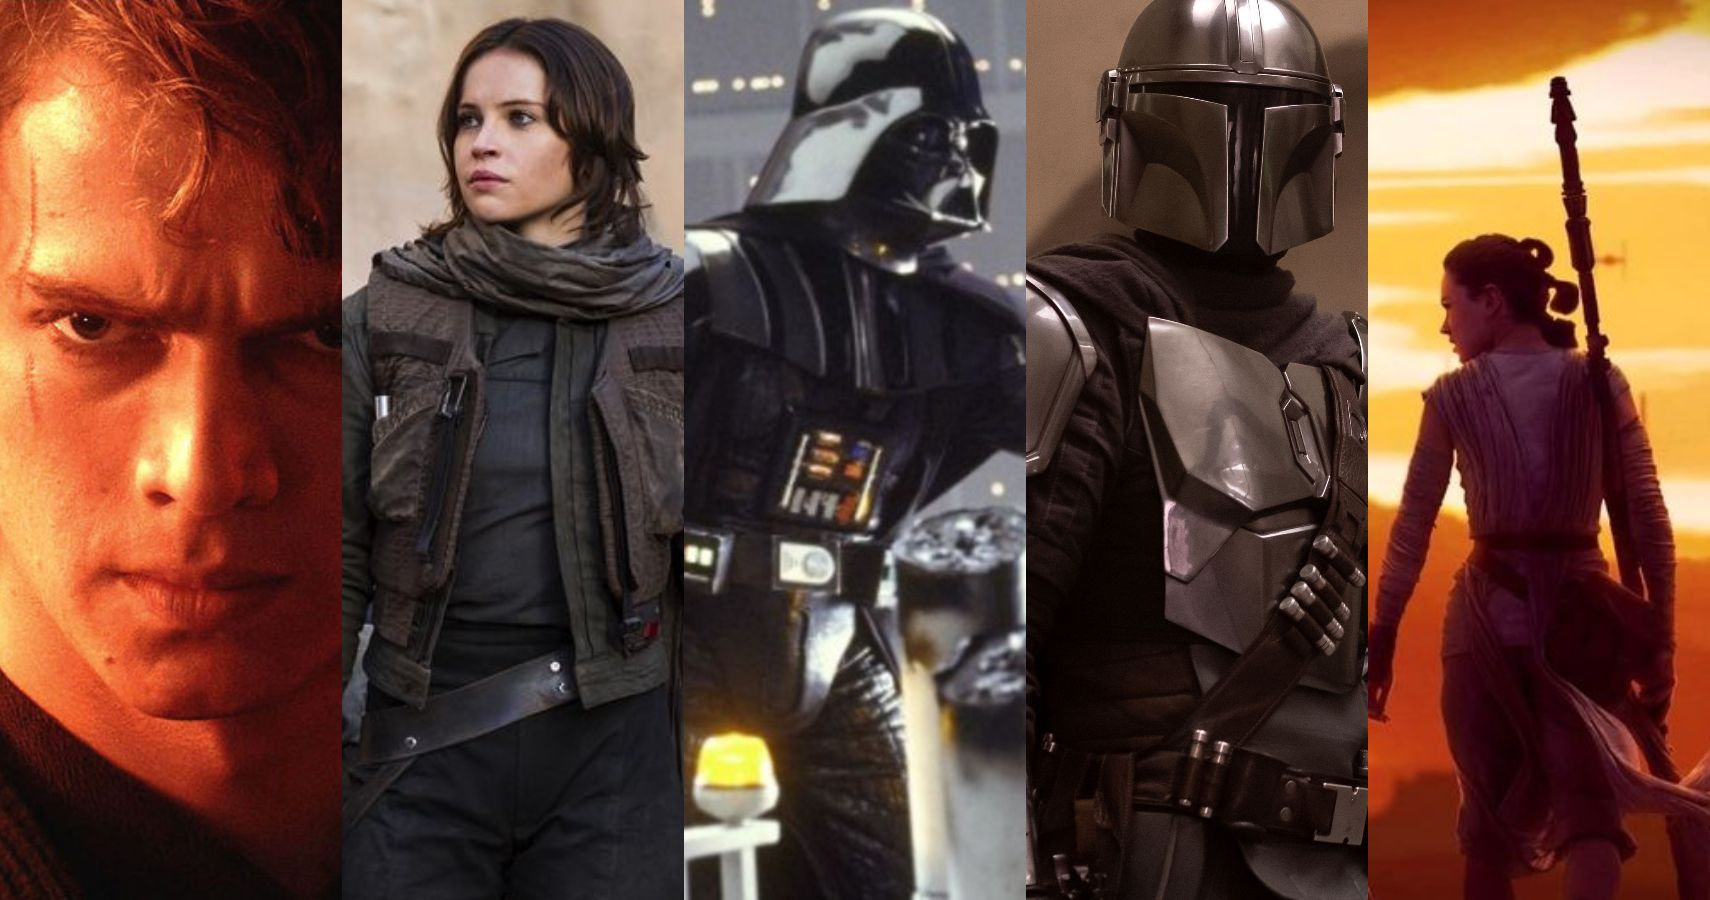 Star Wars Every Movie And Show On Disney Ranked According To Imdb